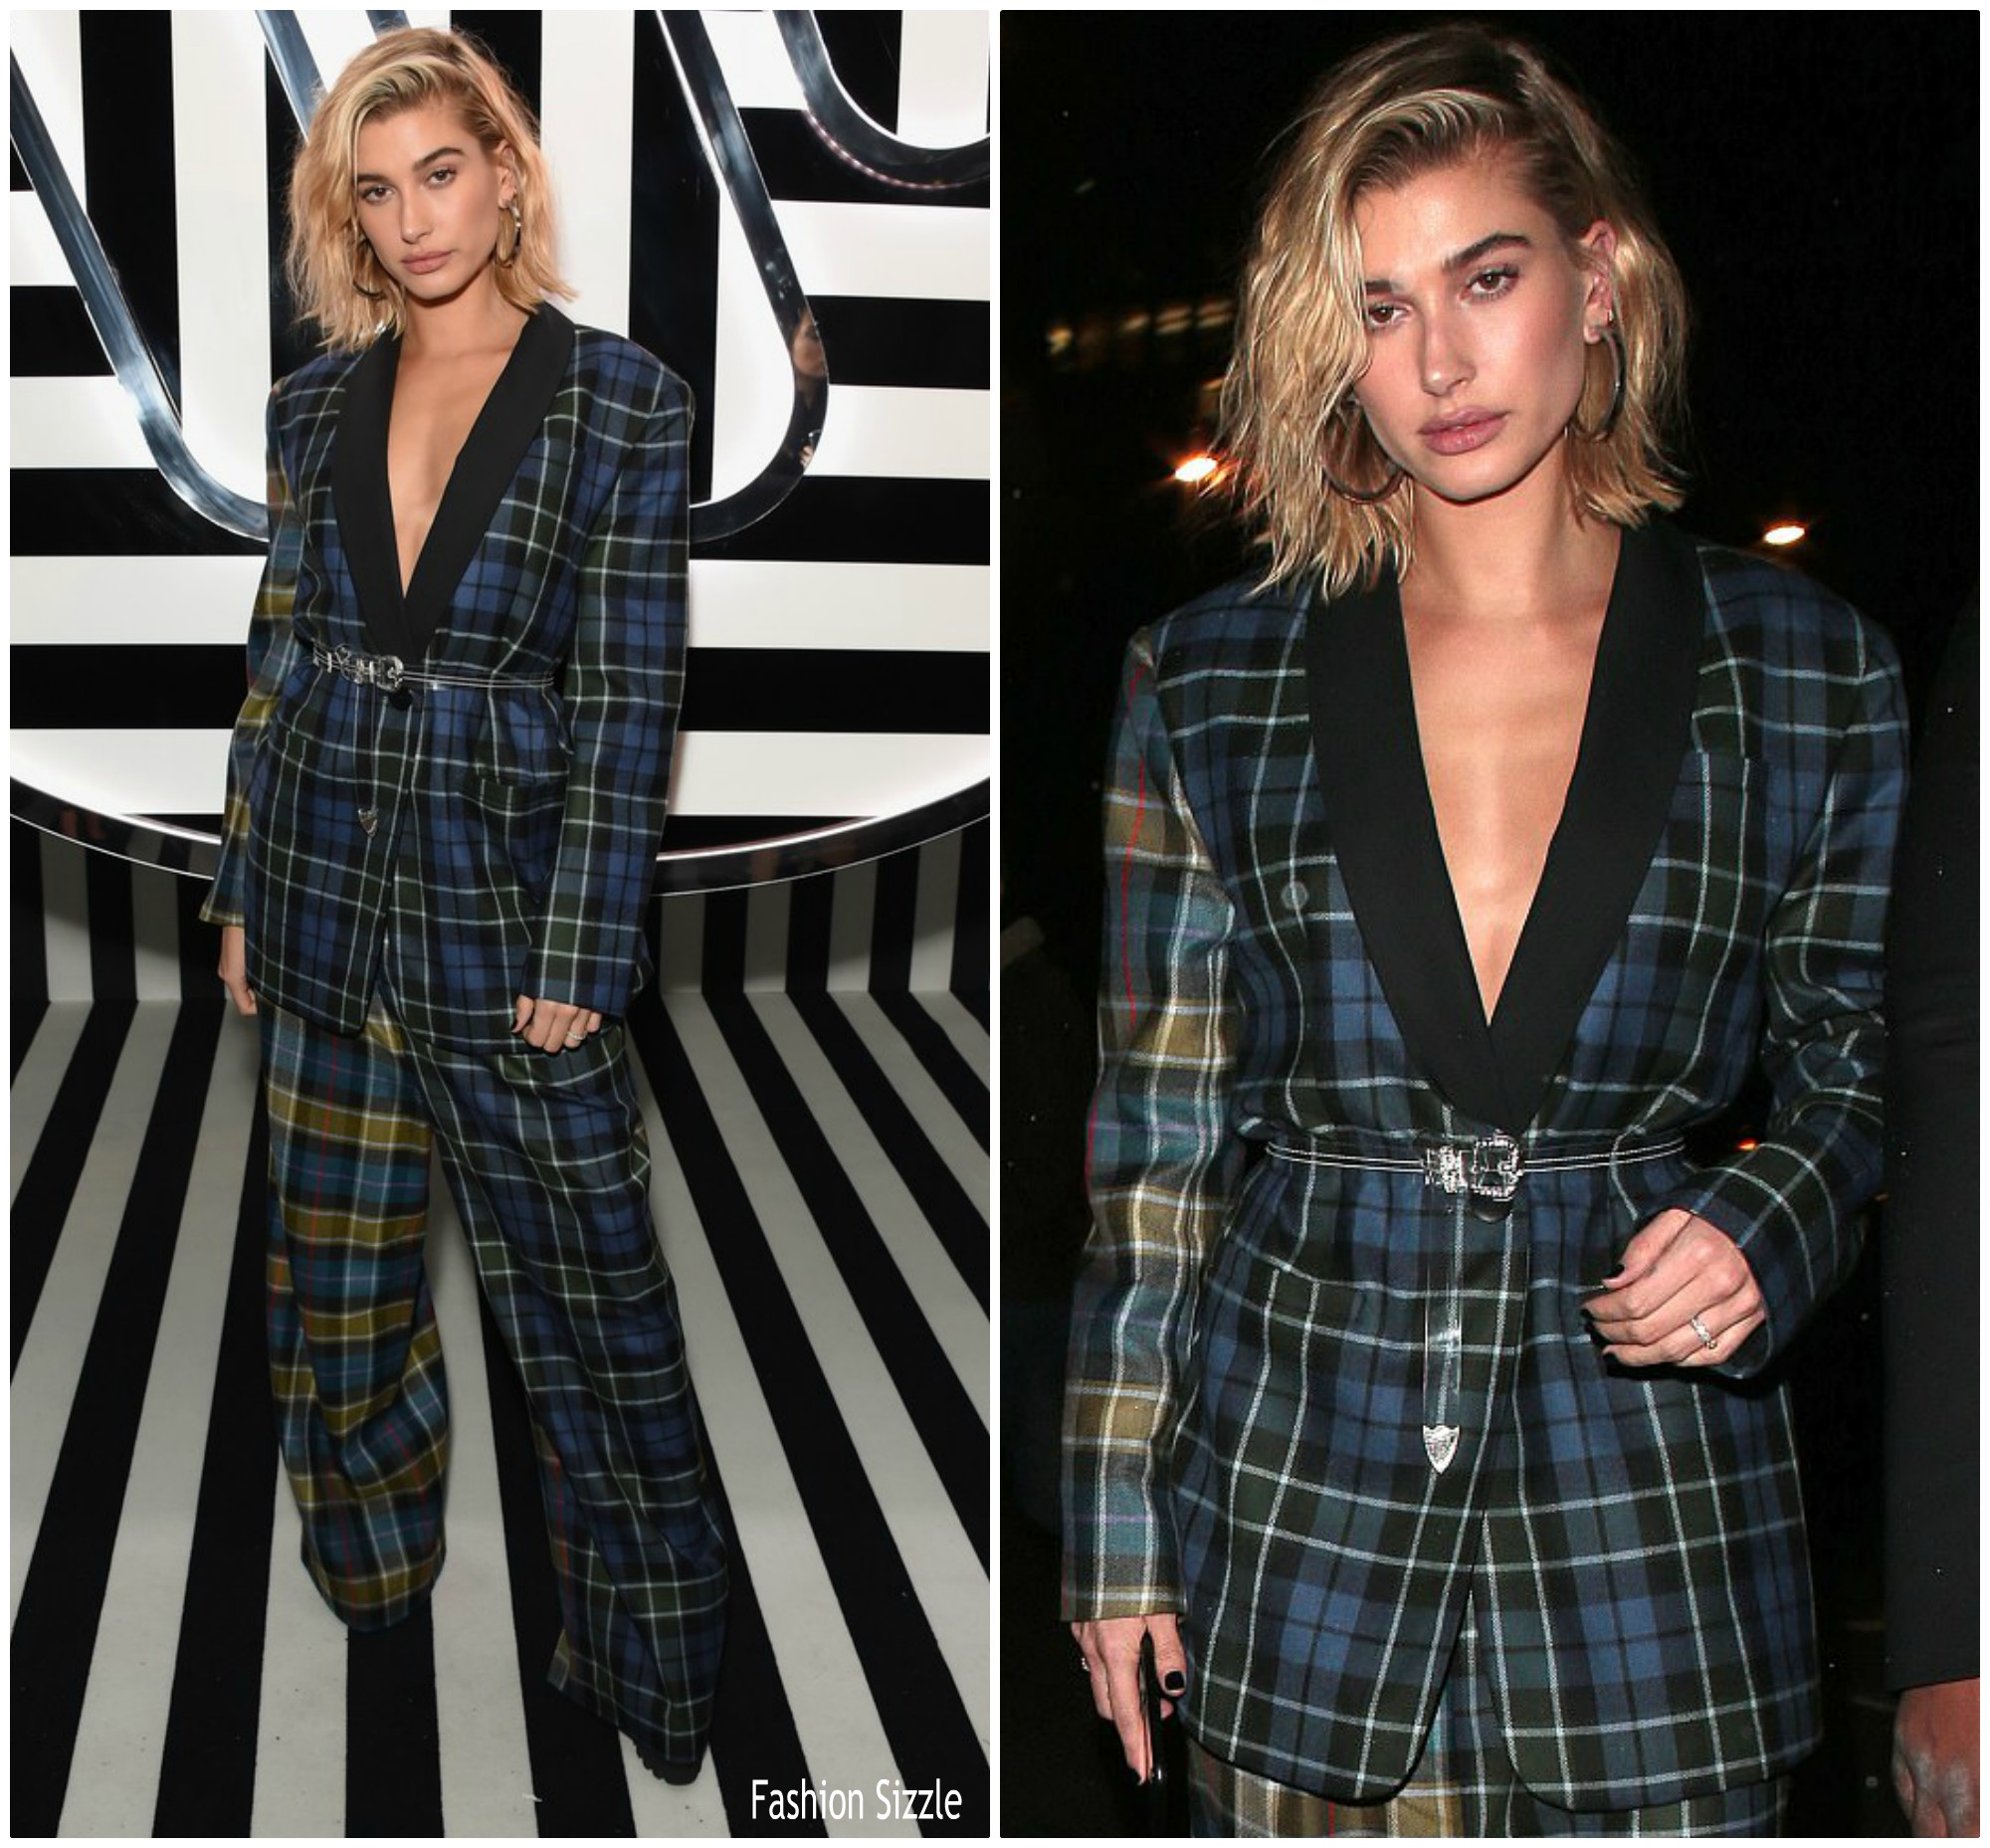 hailey-baldwin-in-tibi-wmg-british-gq-ciroc-brit-awards-2018-party